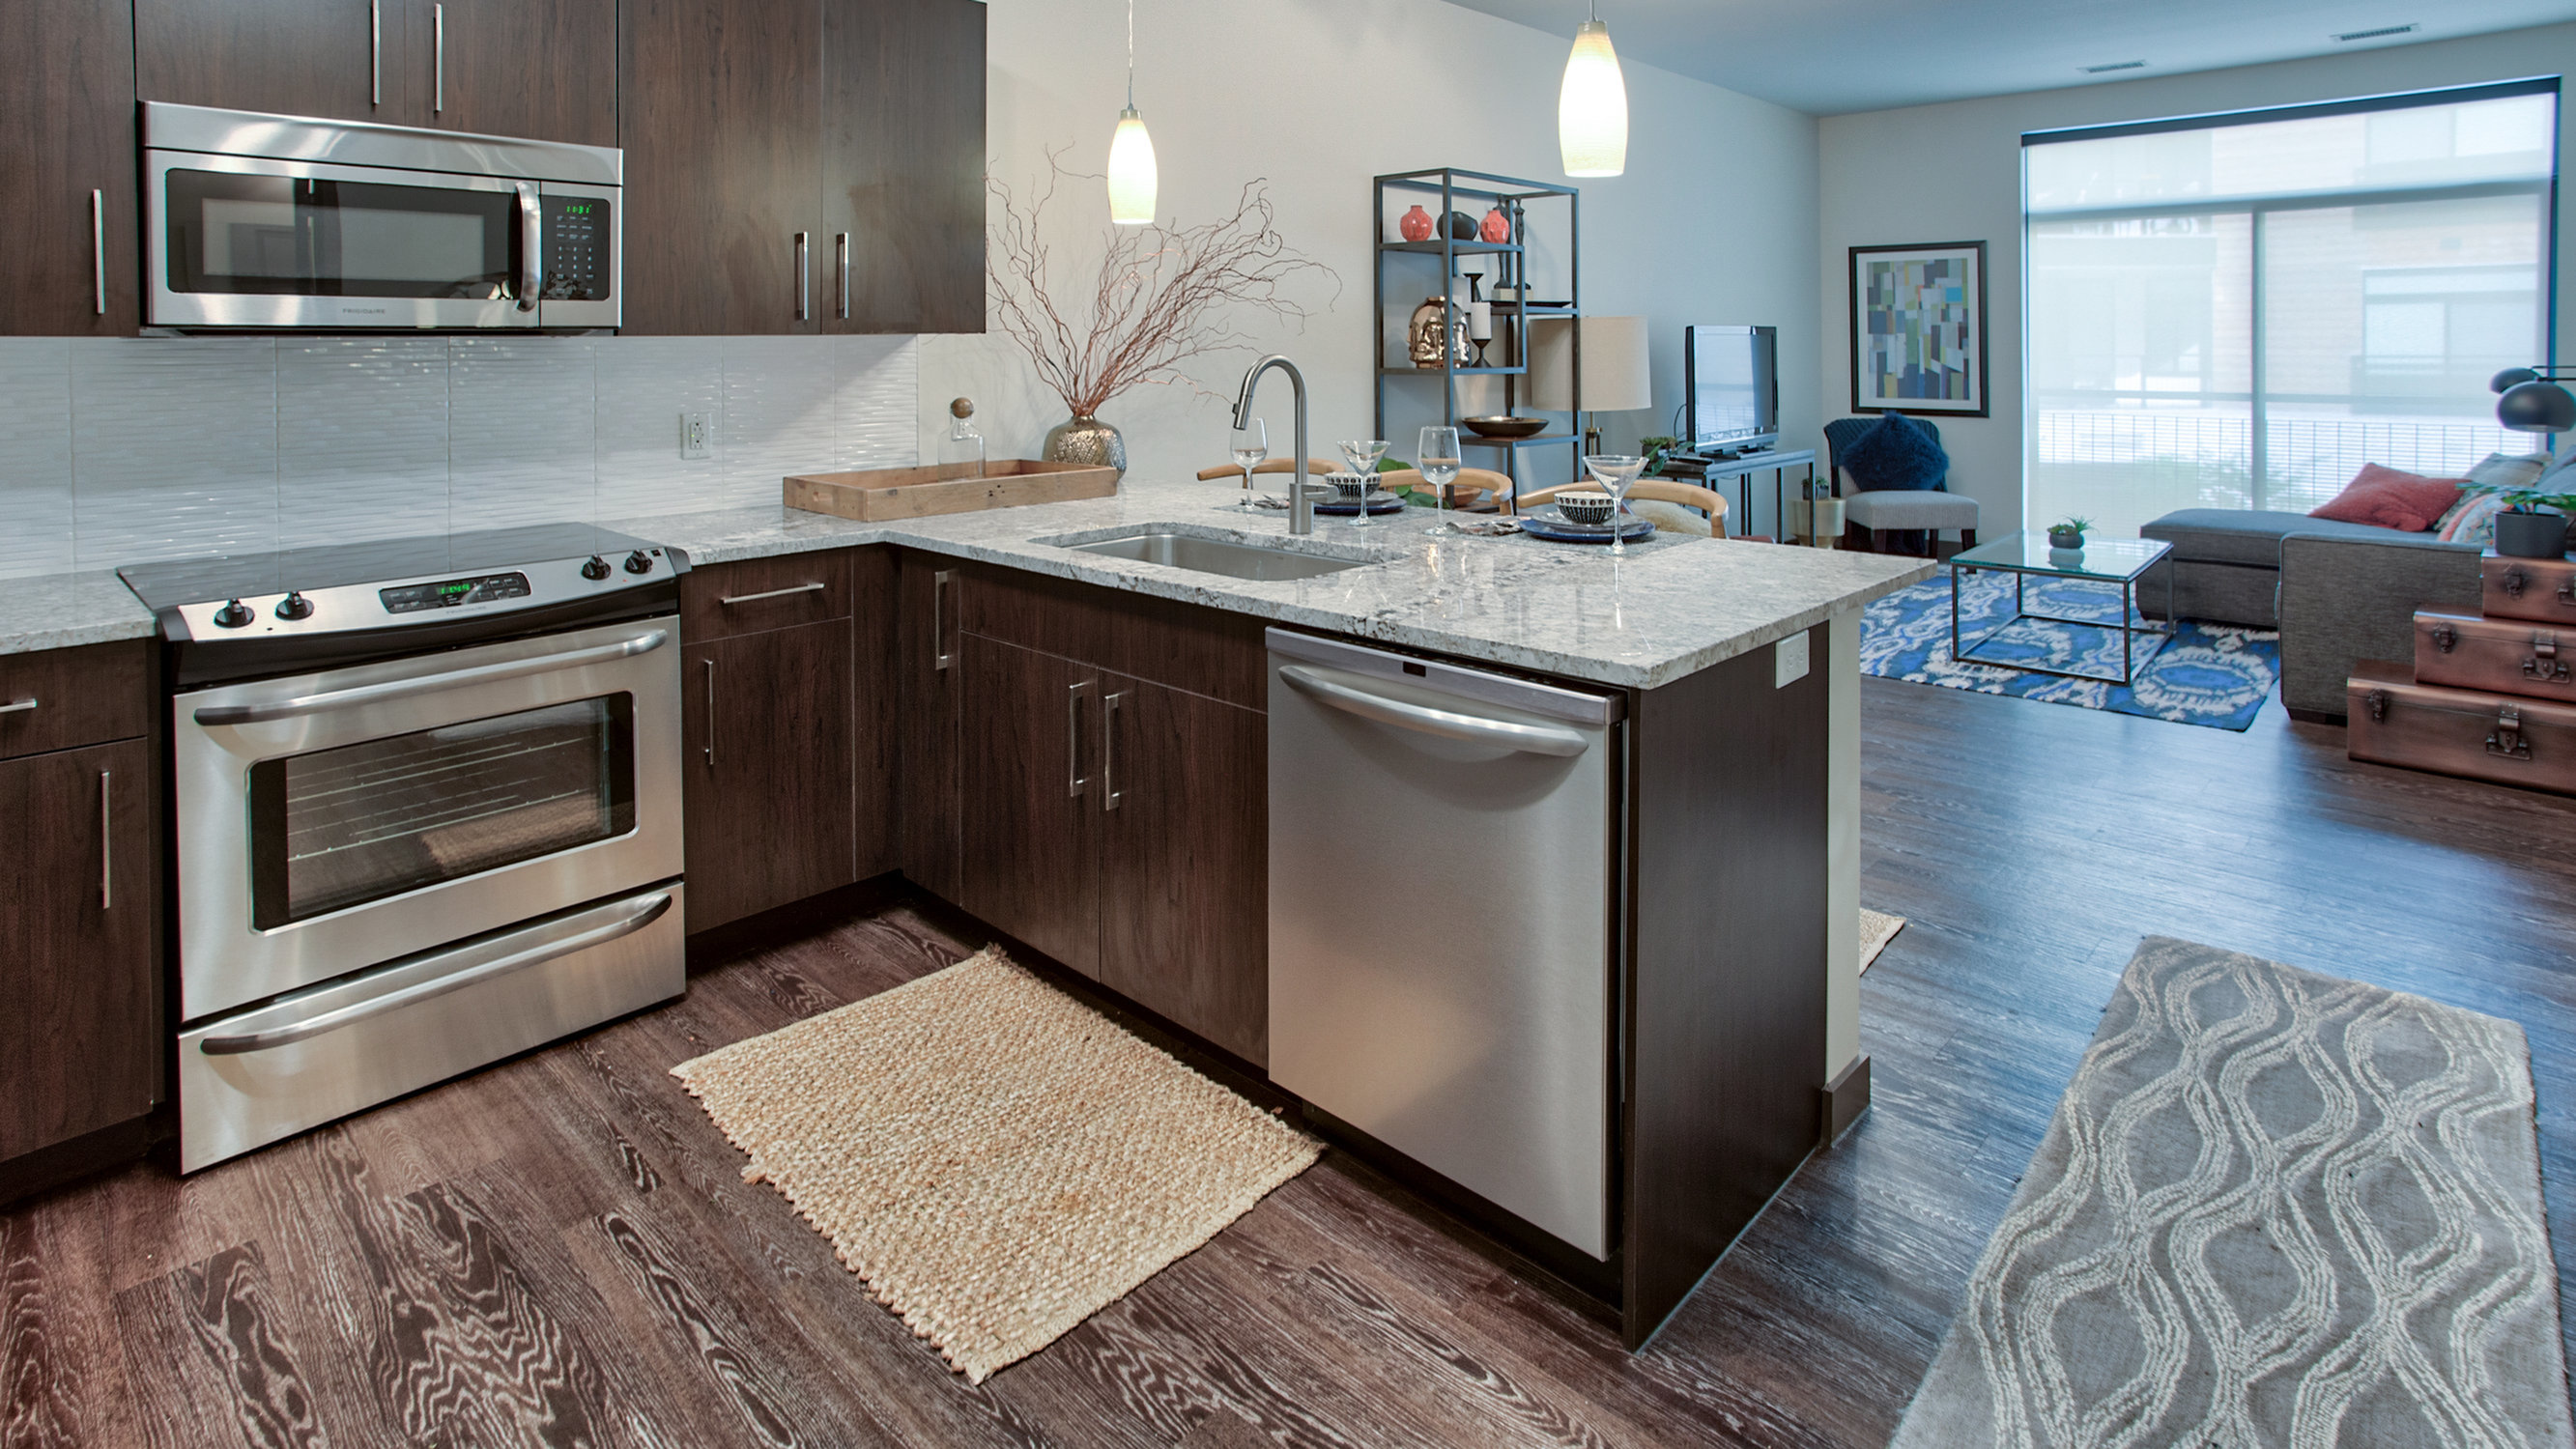 Image of Stainless Steel Appliances for Eastside Bond